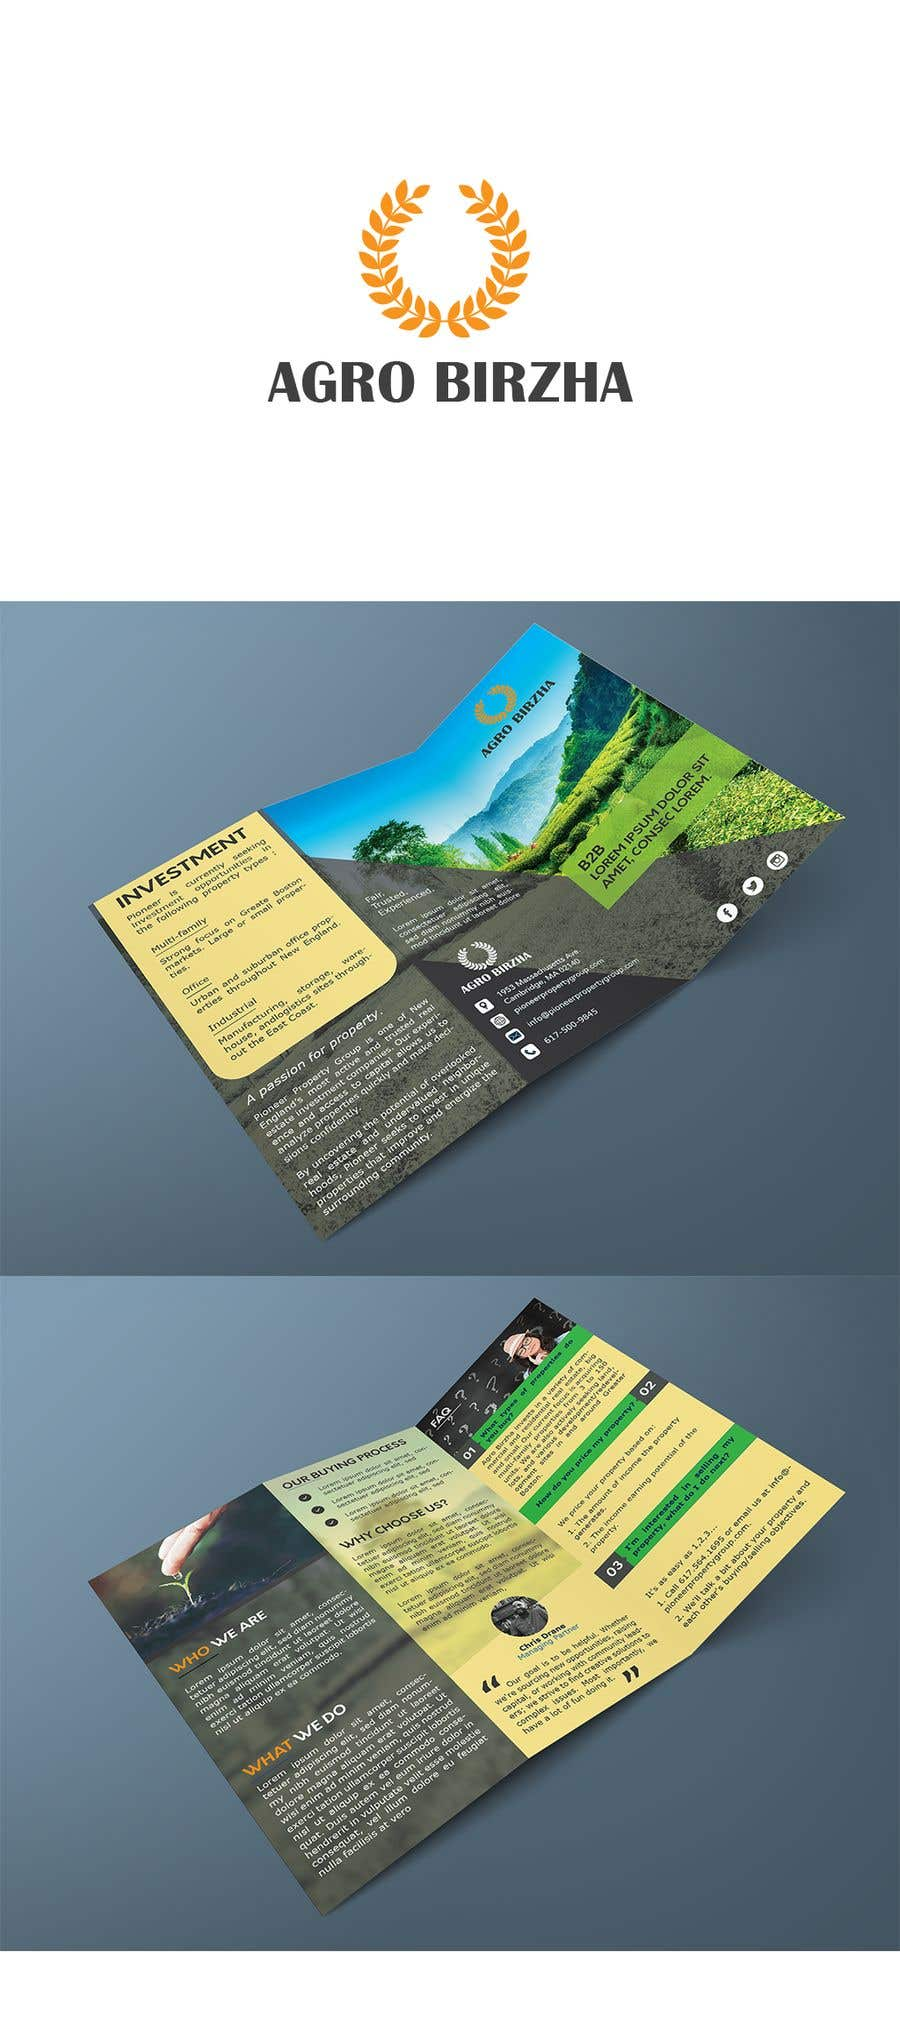 Flyer Design Vectors Photos and PSD files  Free Download